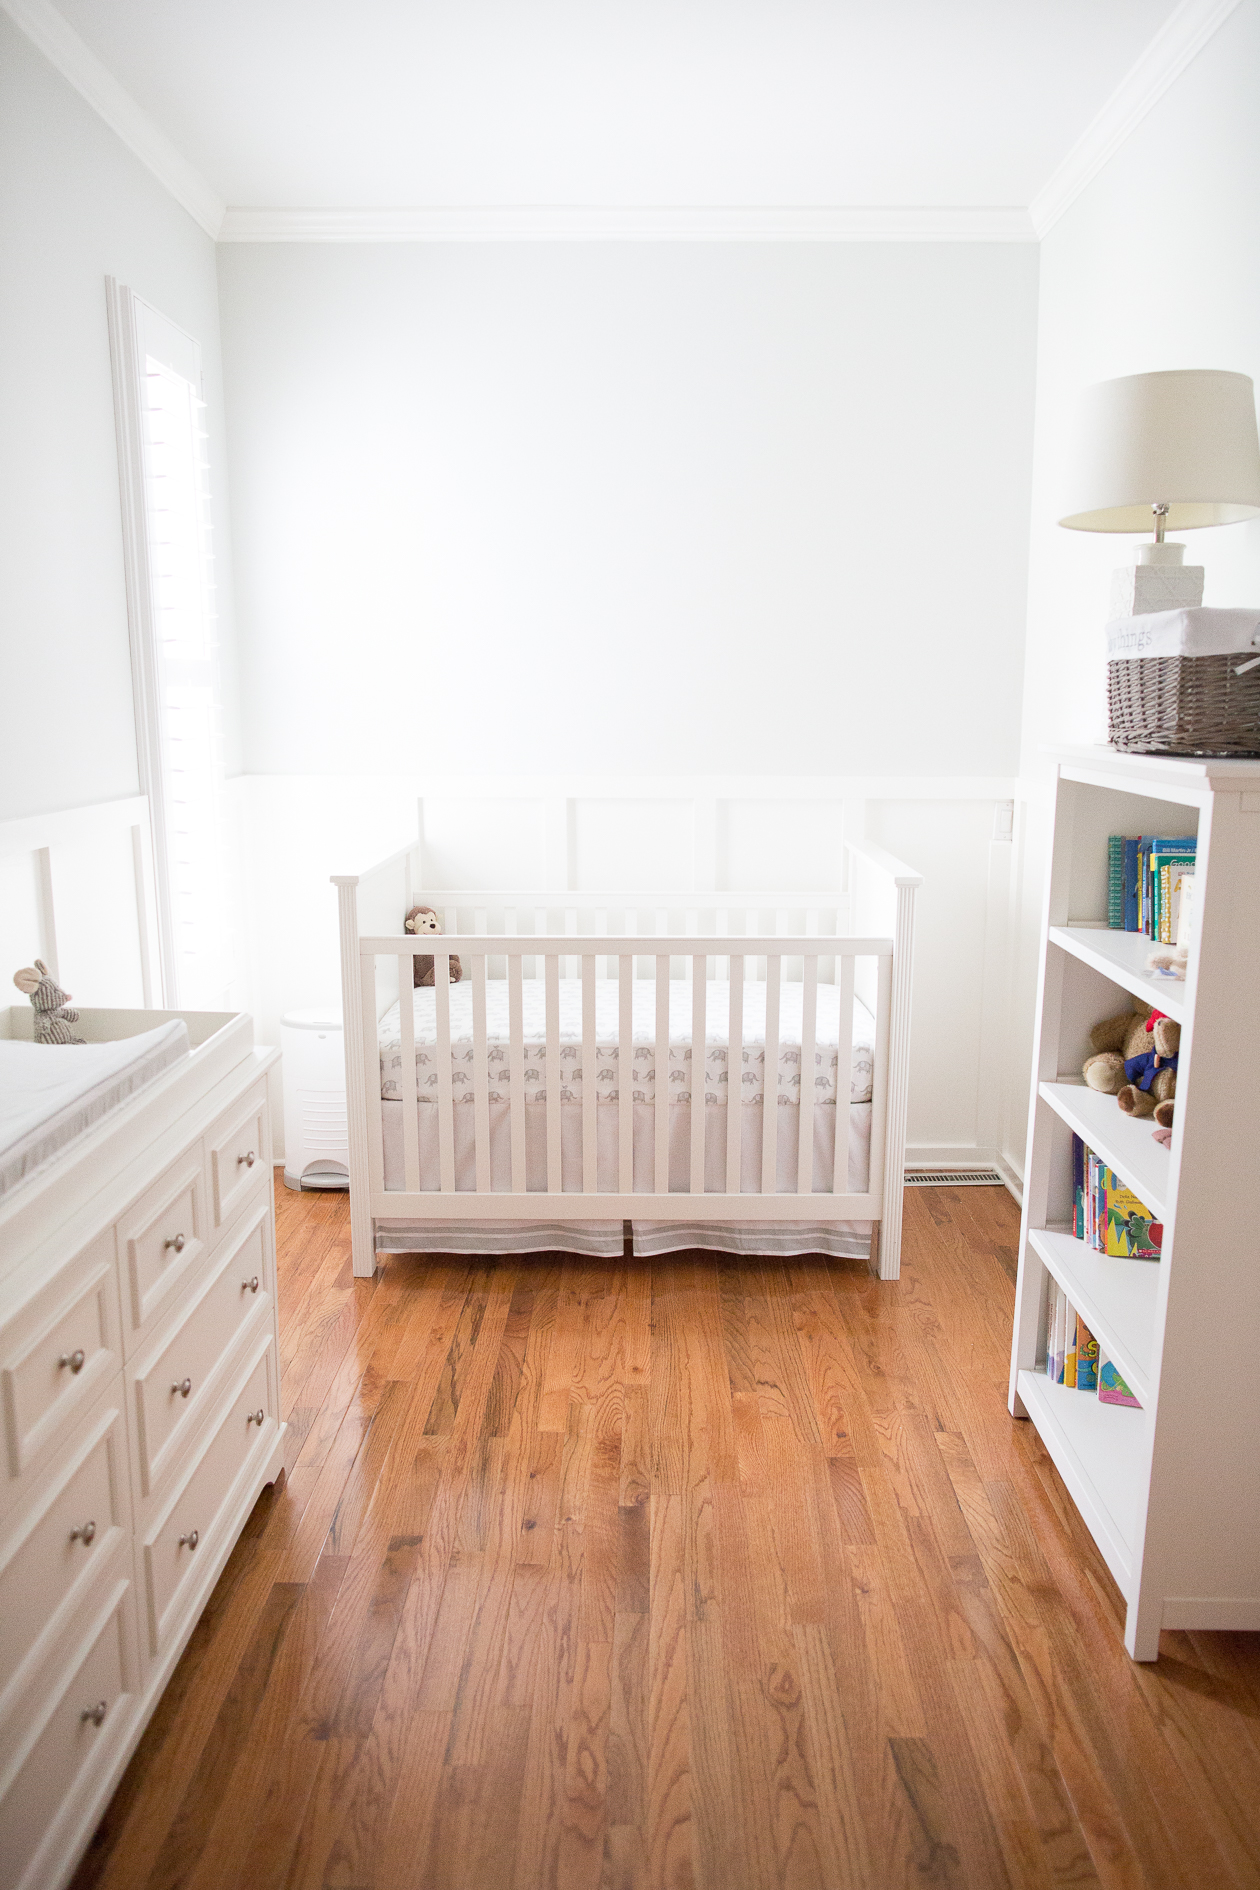 Kelly-in-the-City-Nursery-2